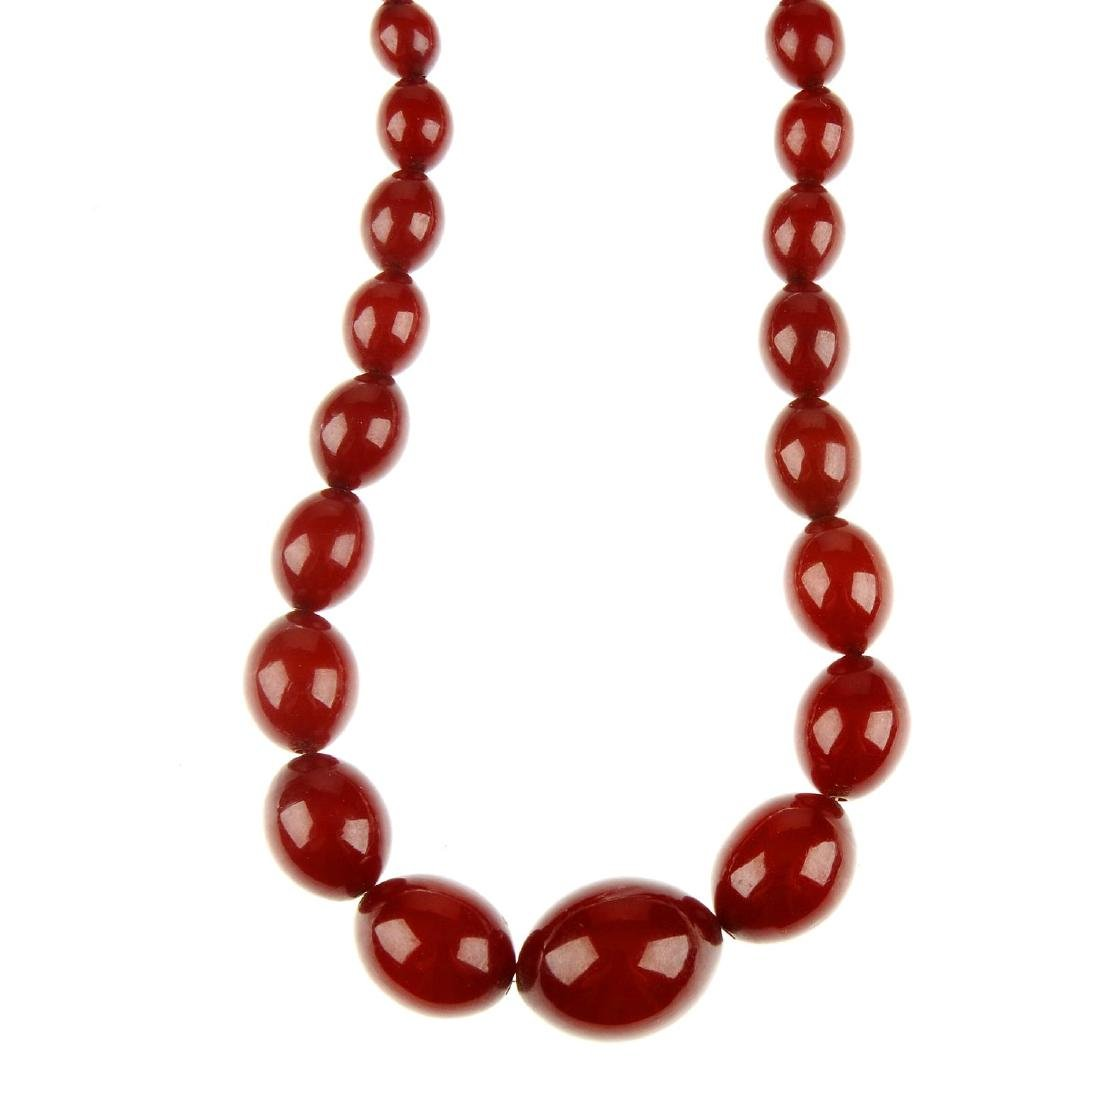 A red plastic bead necklace. Designed as graduated